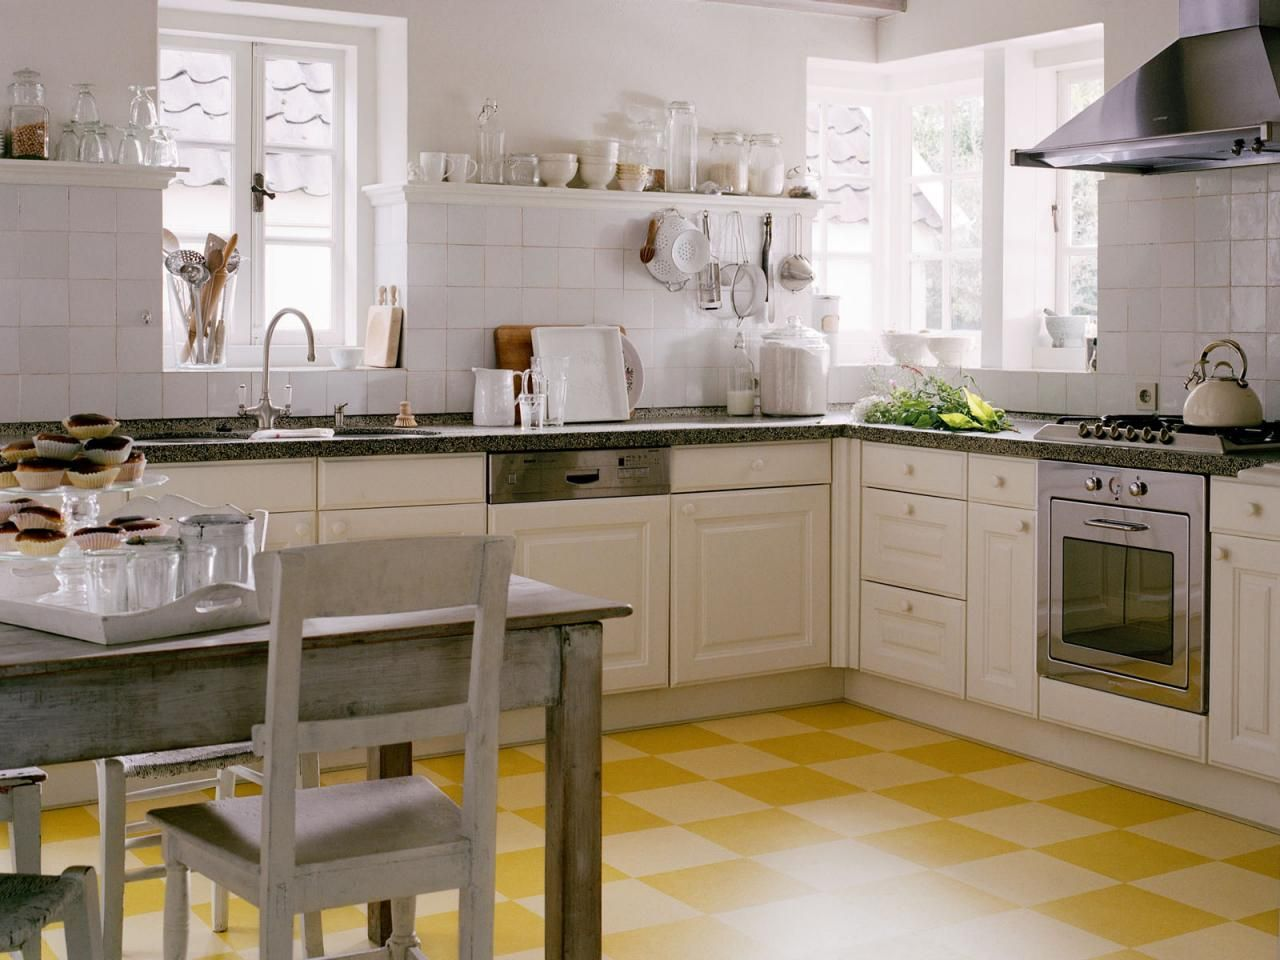 Floor Coverings For Kitchens 17 Best Ideas About Linoleum Kitchen Floors On Pinterest Paint